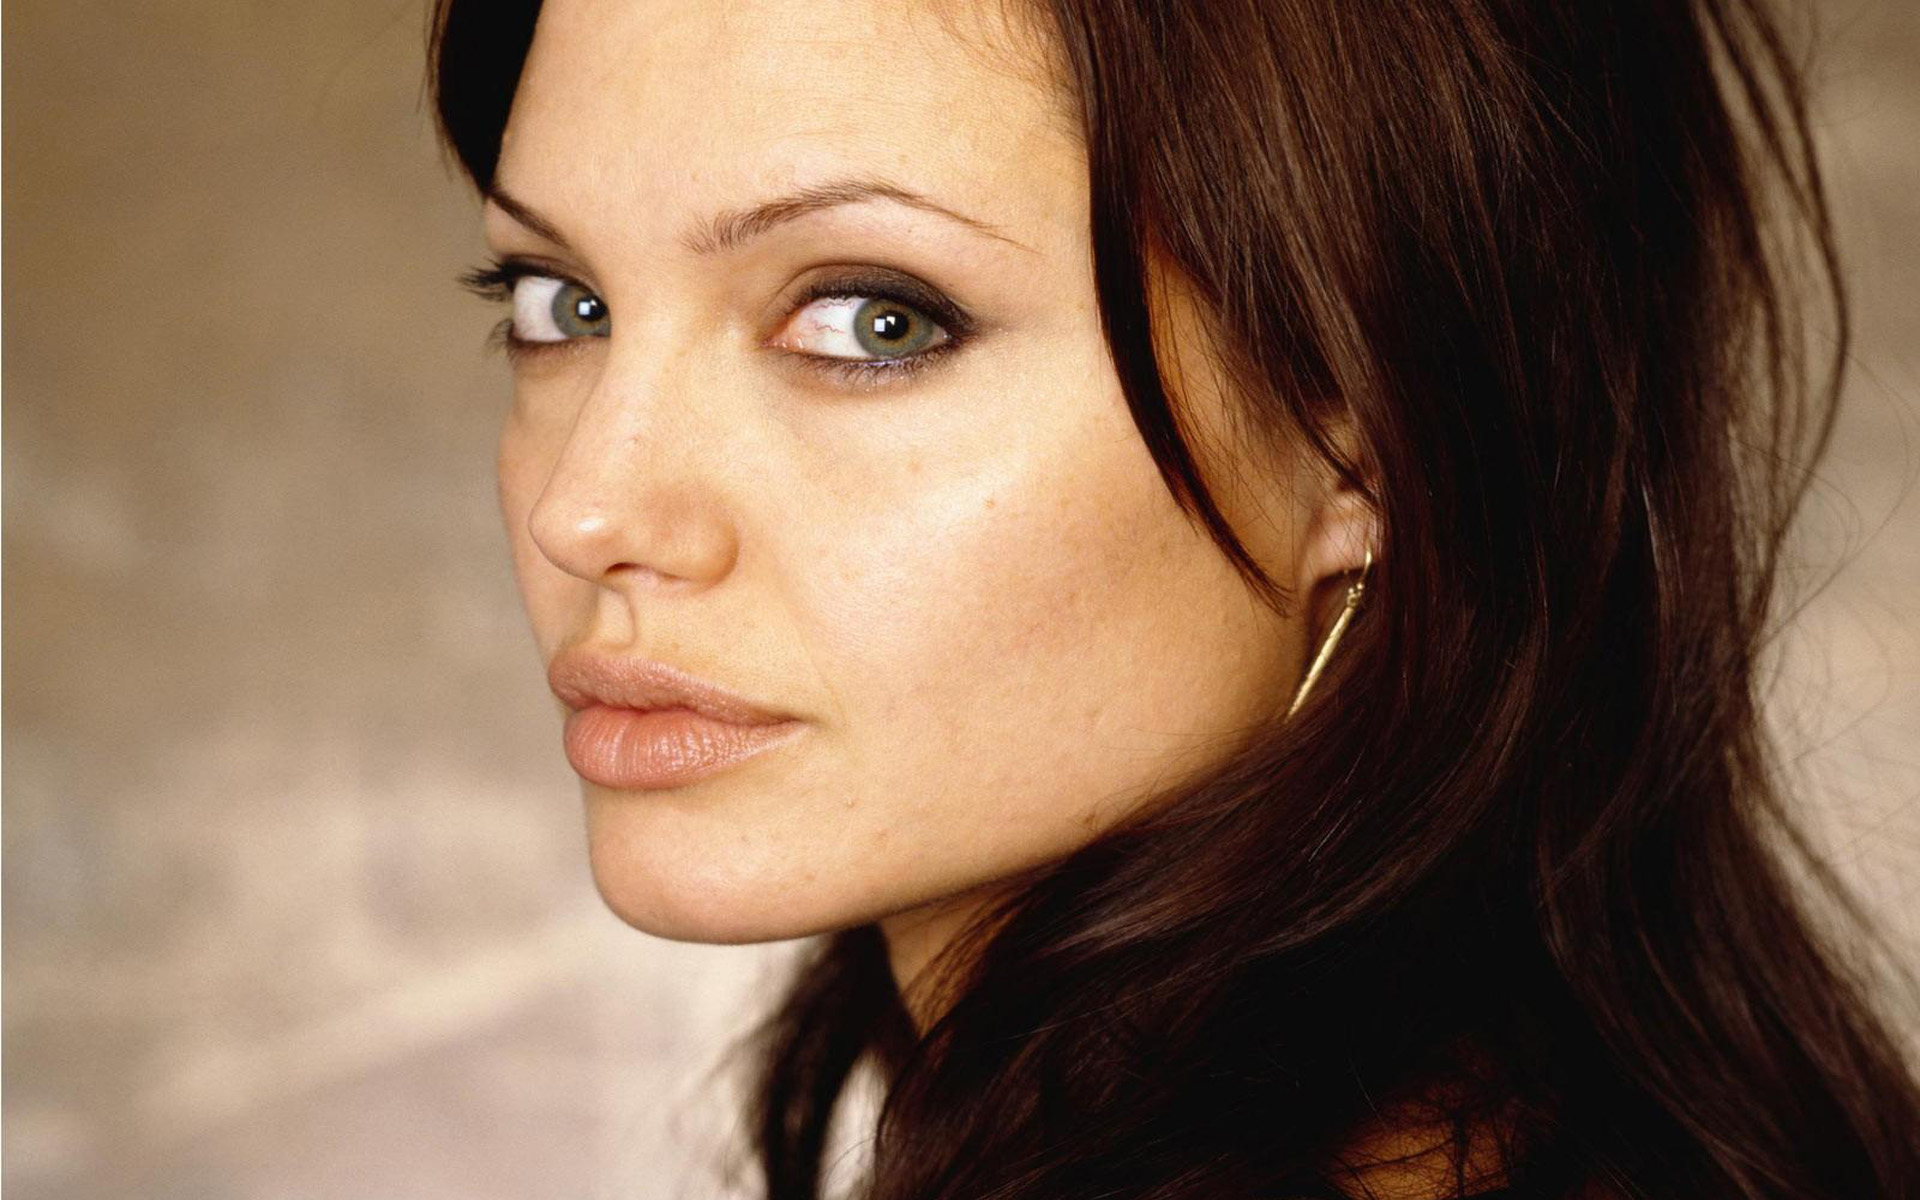 Most Beautiful Women In The World Angelina Jolie Image